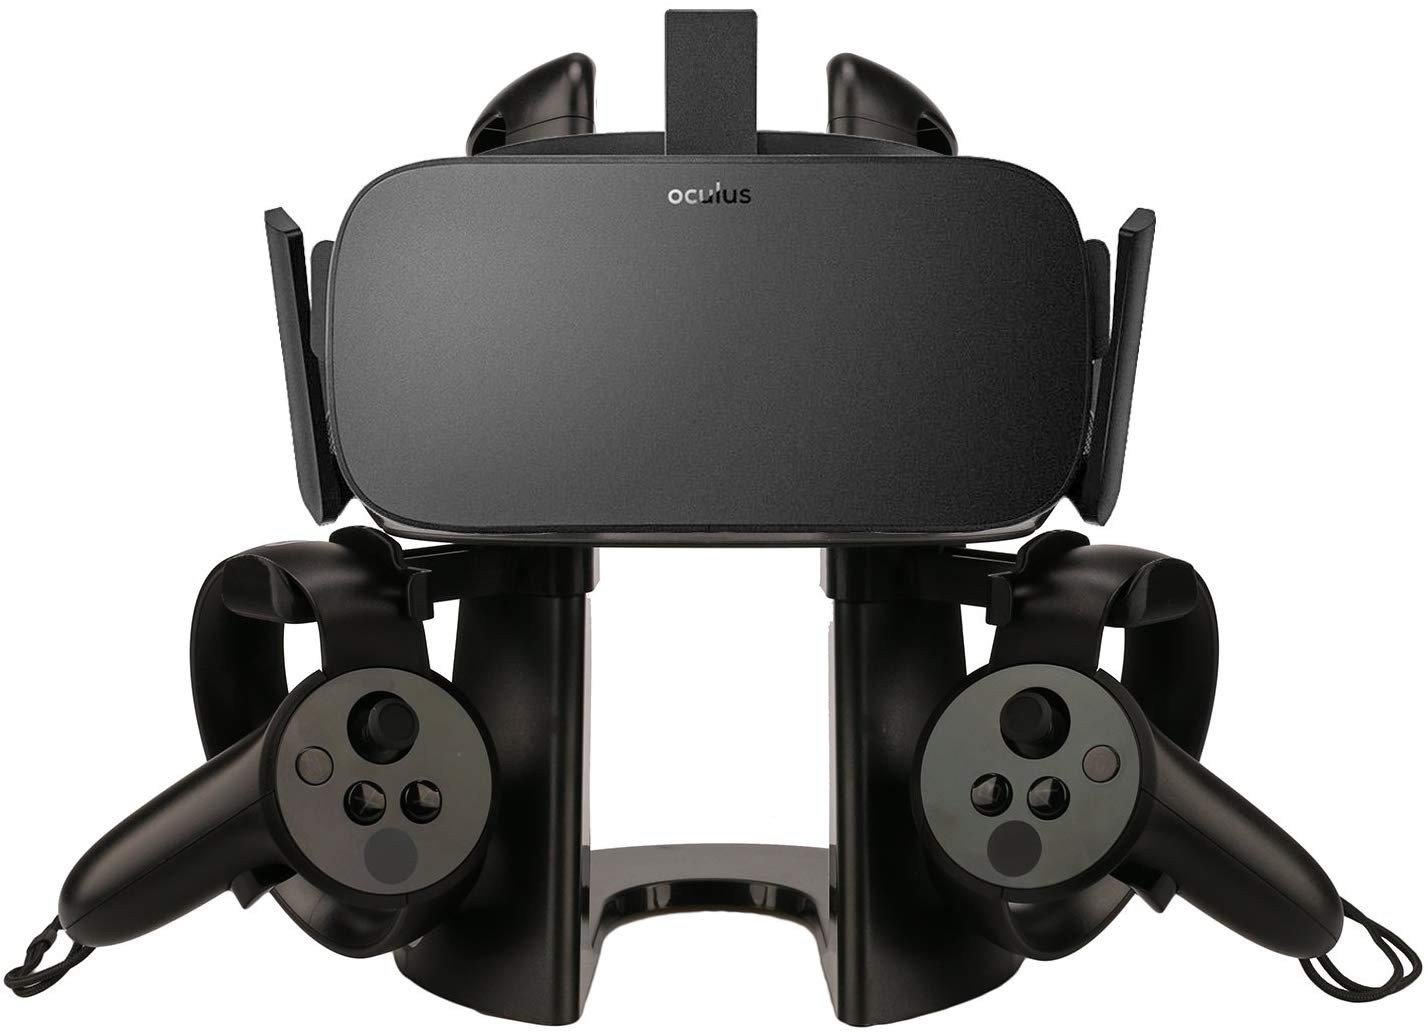 AMVR VR Stand, Headset Display Holder for Oculus Rift S / Quest 2 / Quest